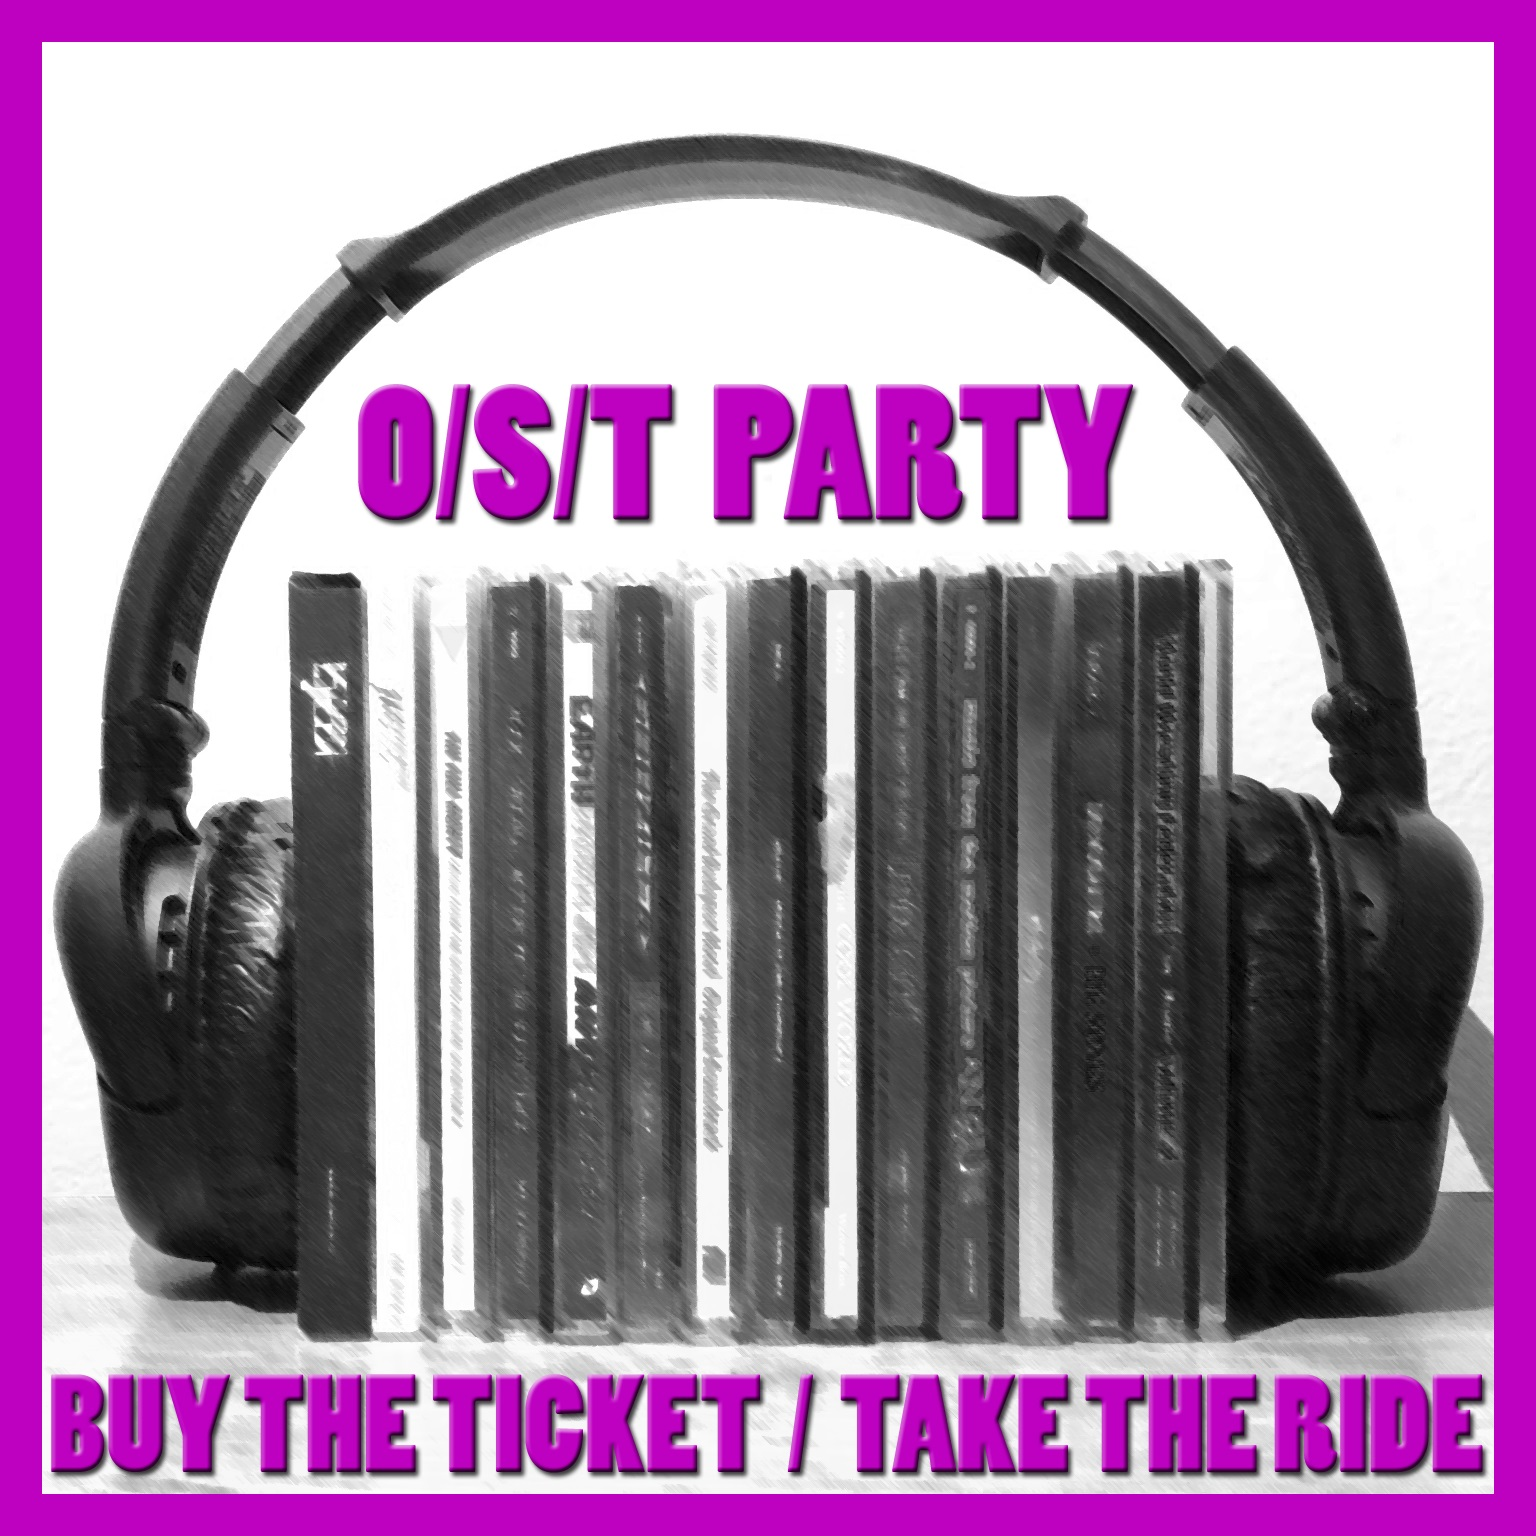 The OST Party